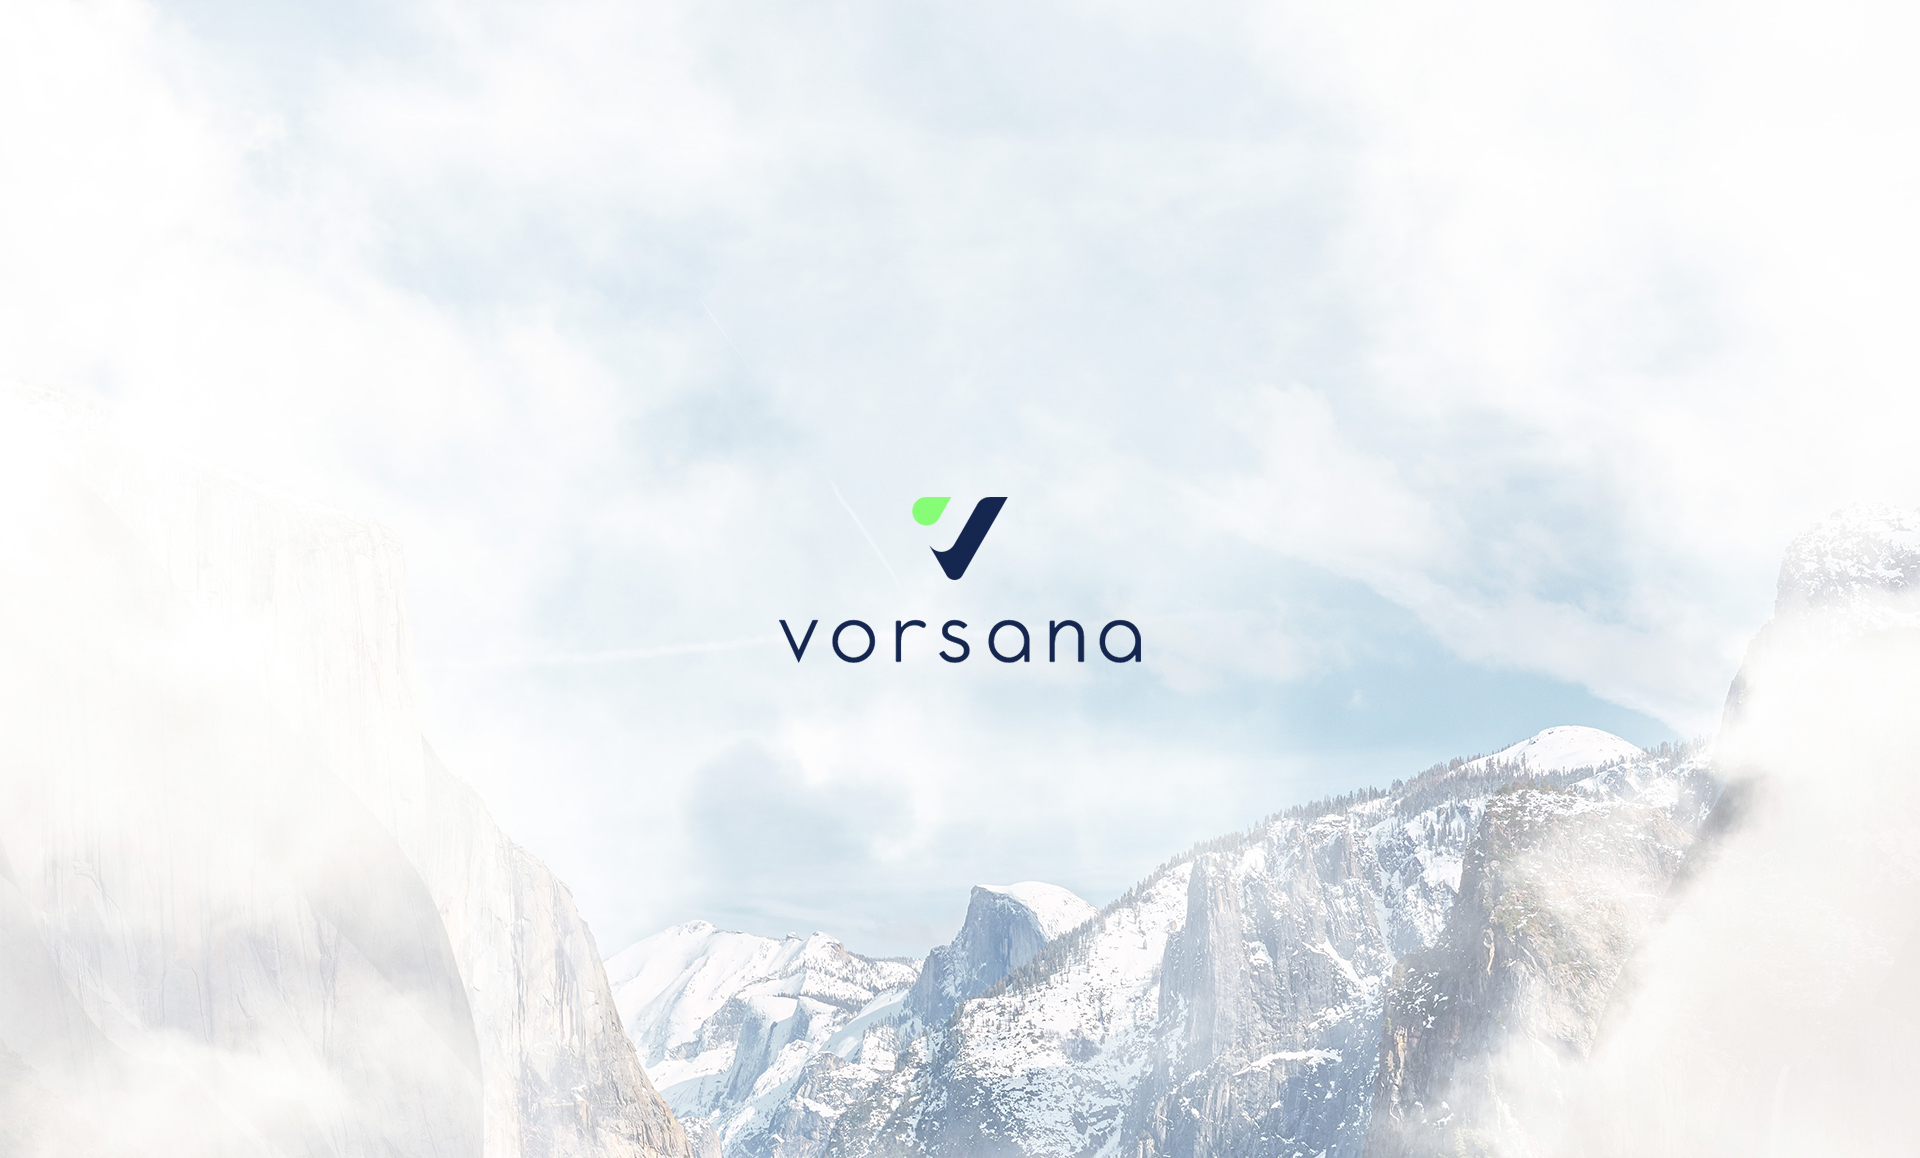 Read more on Vorsana